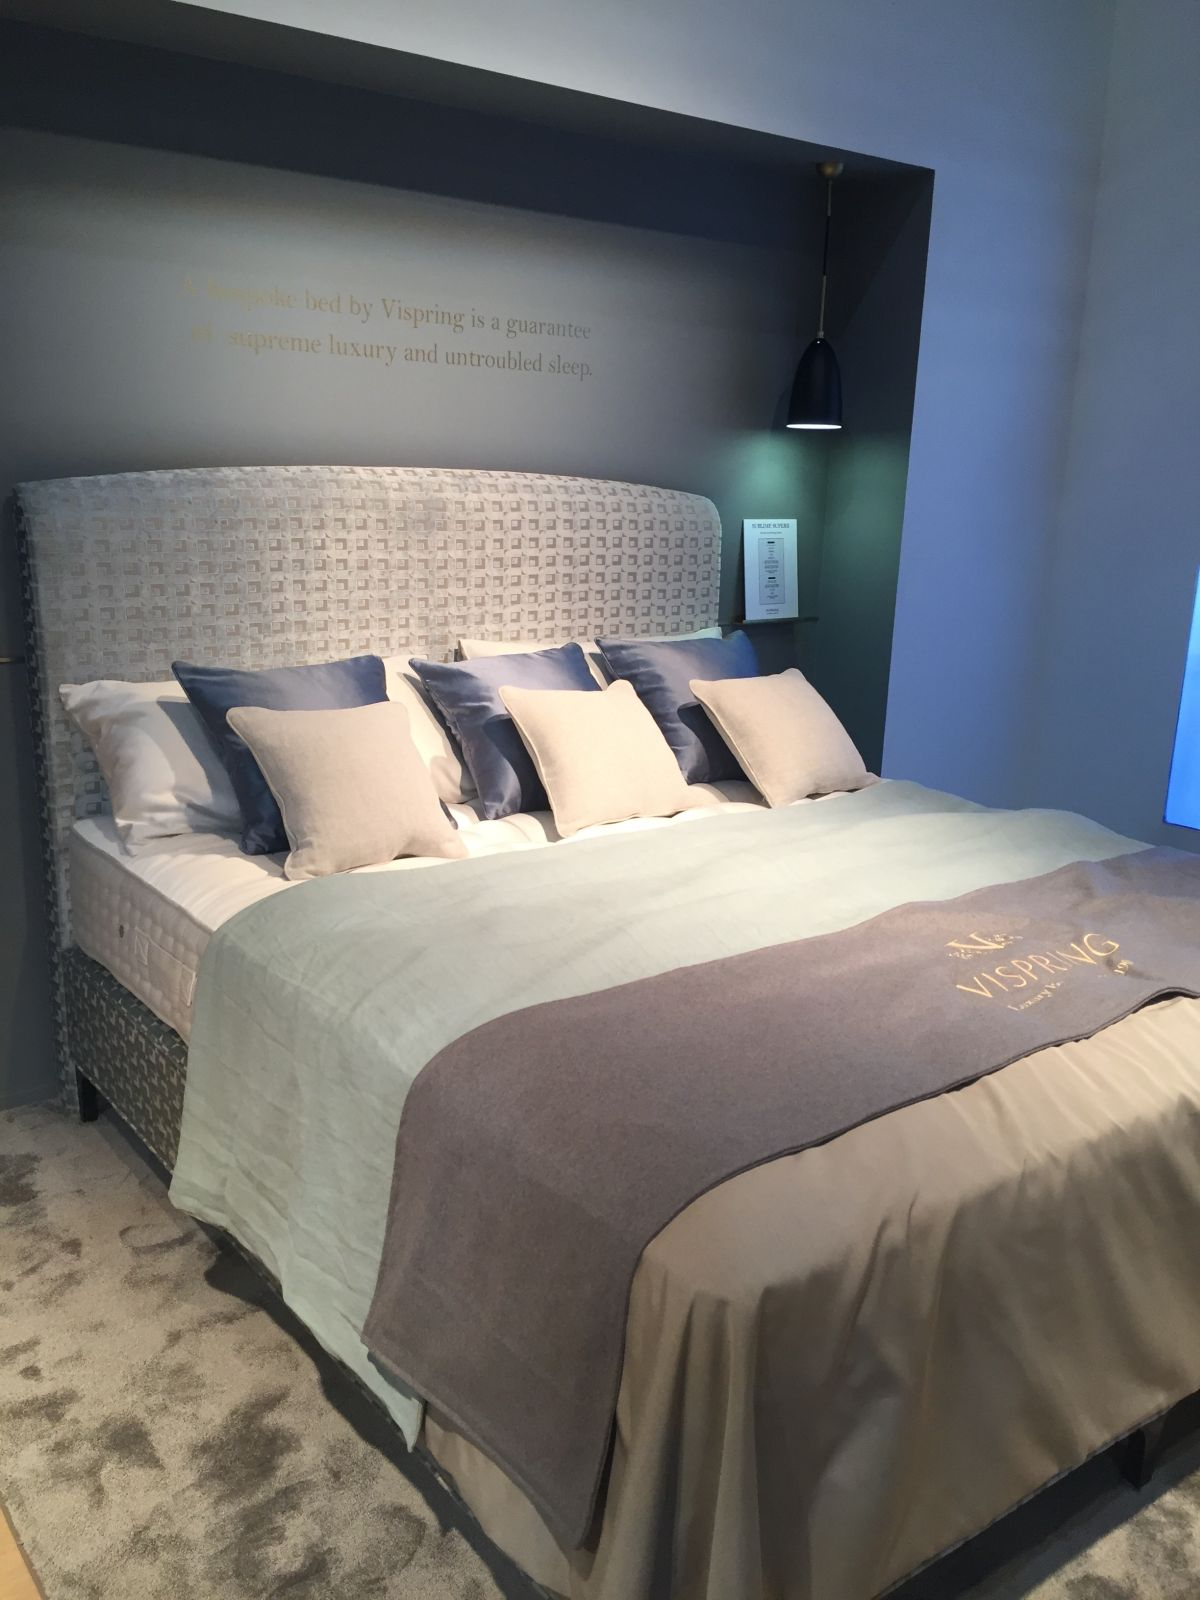 Vispring luxury beds